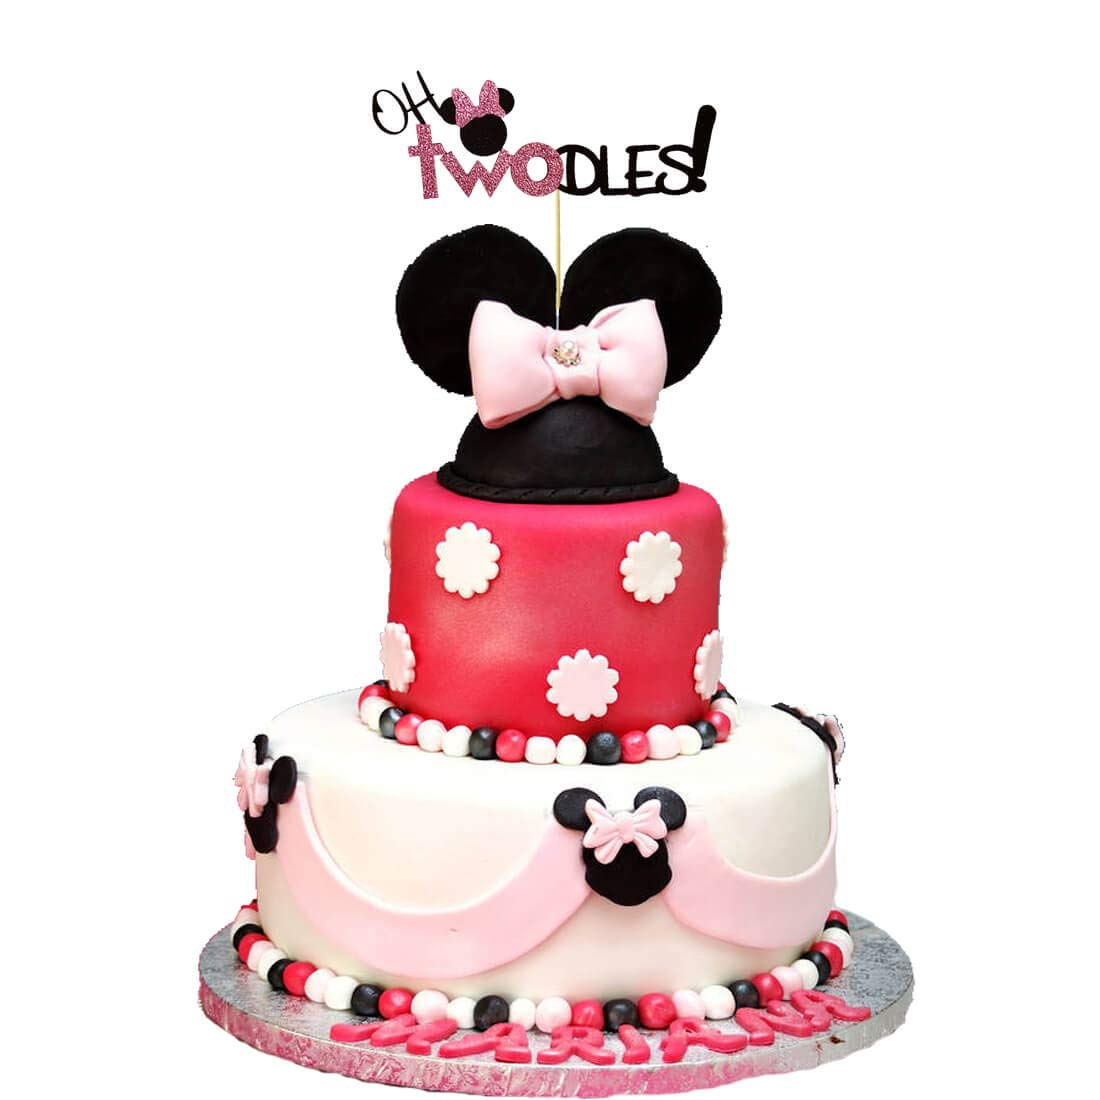 Minnie Mouse Birthday Cake.Minnie Mouse Second Birthday Cake Topper Oh Two Dles Birthday Party Supplies Decorations For Girl Pink